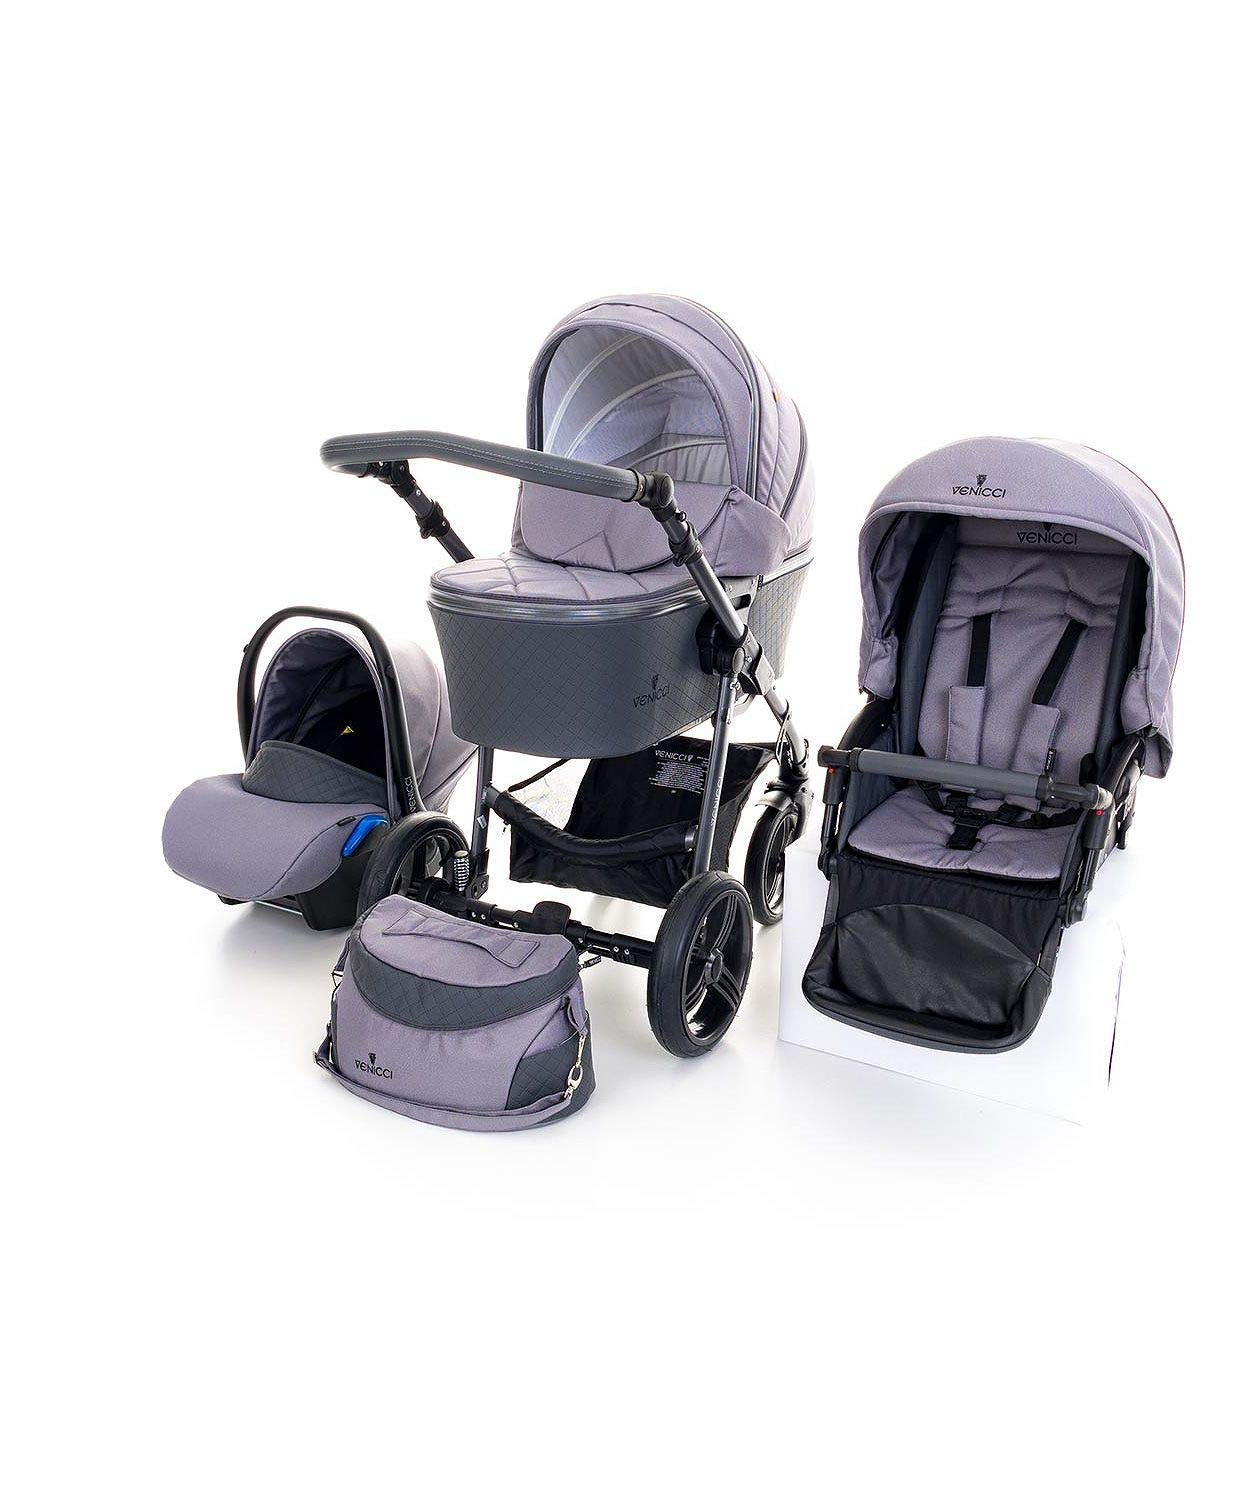 Venicci Carbo Lux 3-in-1 Travel System - Natural Grey - with Carrycot + Car Seat + Changing Bag + Apron + Raincover + Mosquito Net + 5-Point Harness and UV 50+ Fabric + Car Seat Adapters + Cup Holder Venicci 3 in 1 Travel System with included Group 0+ Car Seat 5-point harness to enhance the safety of your child Comfortable seat for baby with additional liners 1